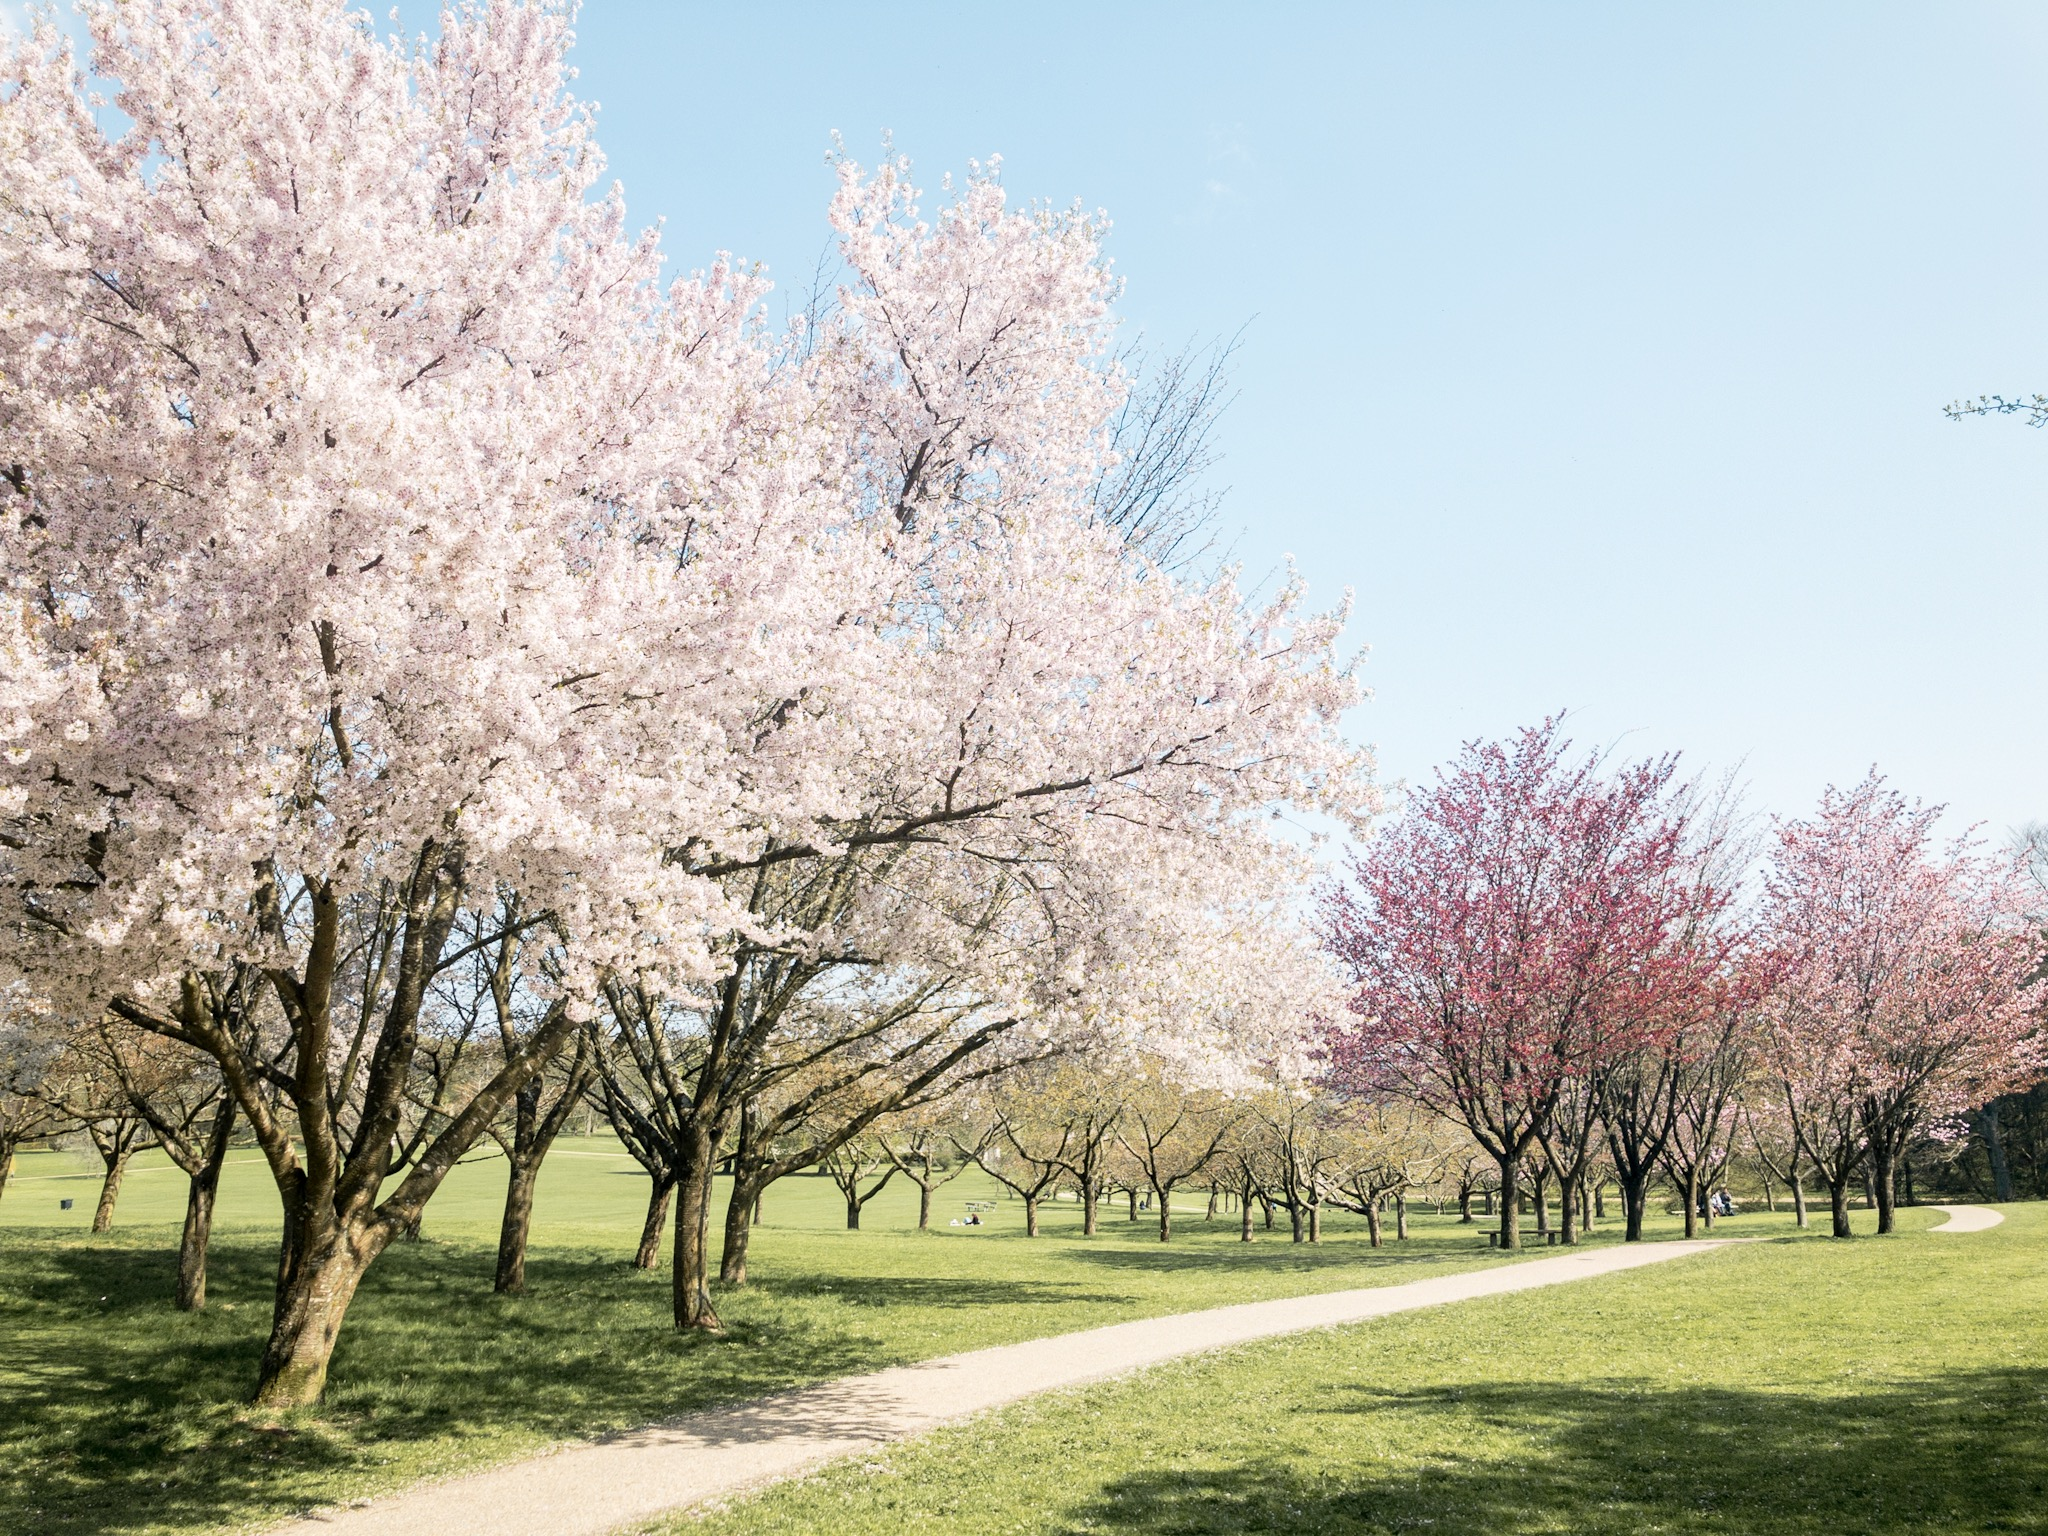 The beautiful grounds near Marselisborg Palace, Denmark in Spring